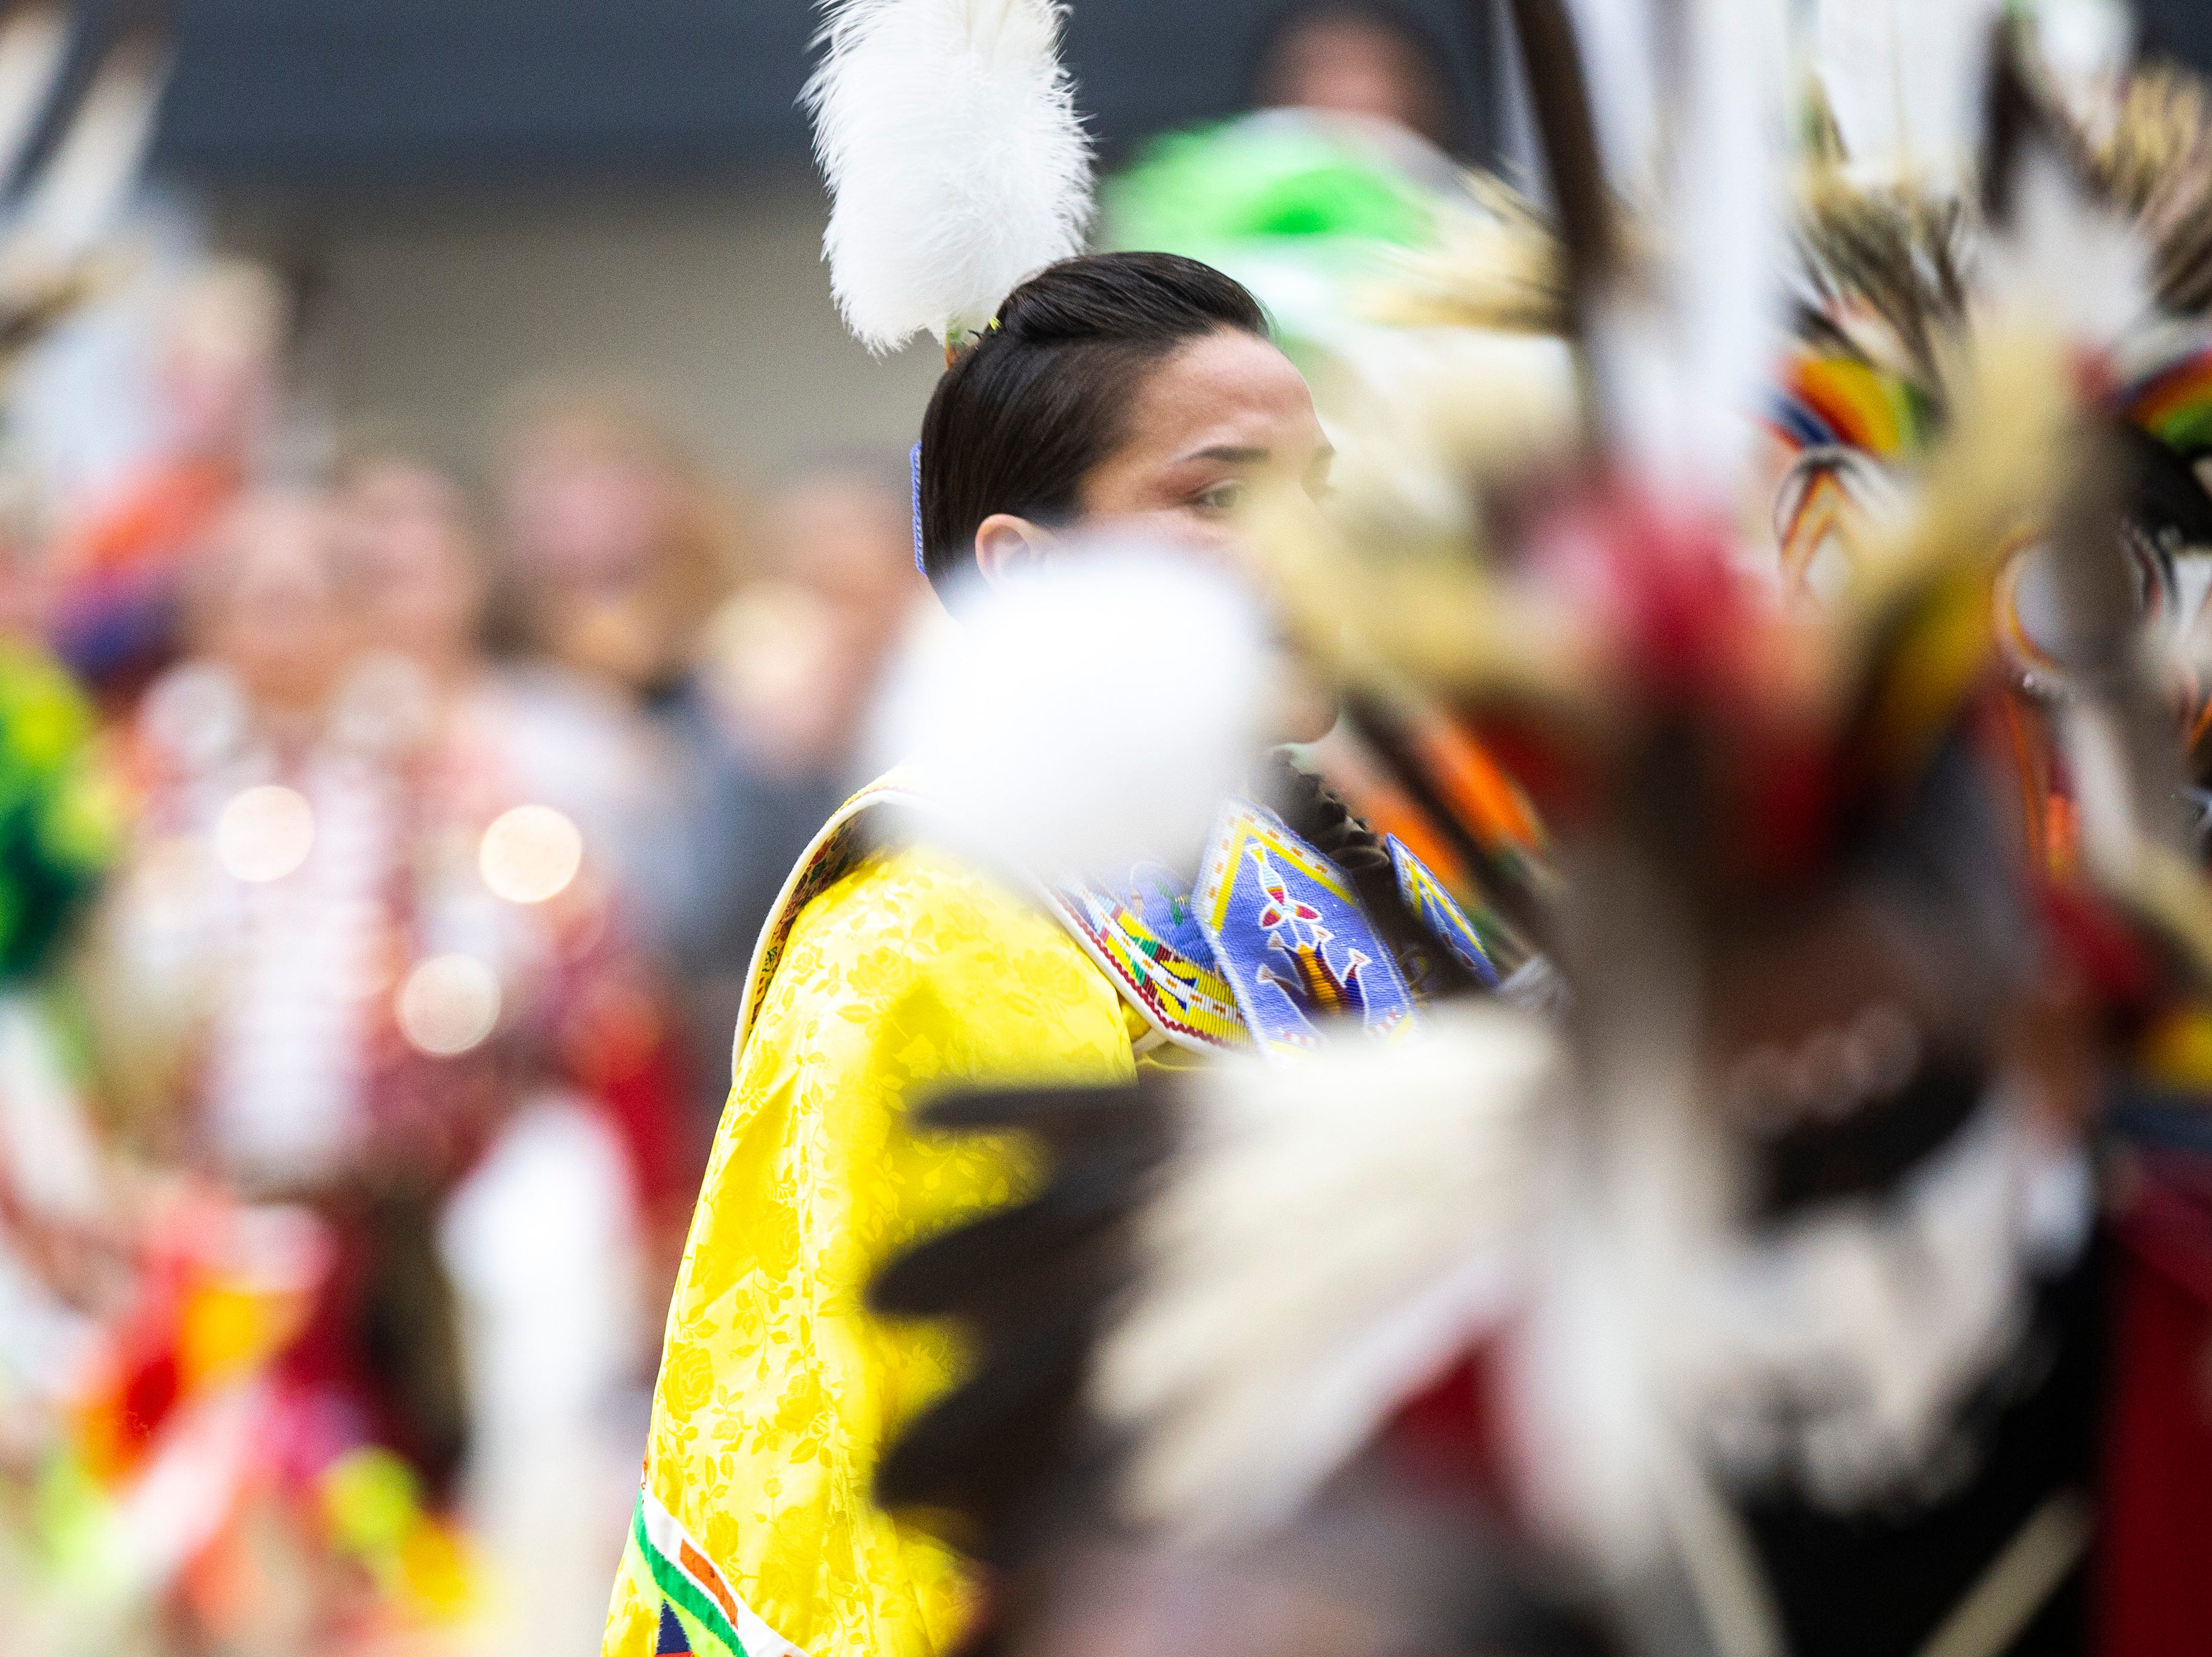 Nahmi Lasley, of the Comanche and Dakota tribes in Tama, Iowa, dances during the 25th annual University of Iowa powwow, Saturday, April 20, 2019, at the Field House on the University of Iowa campus in Iowa City, Iowa. Lasley and her children participated in dances during the event.